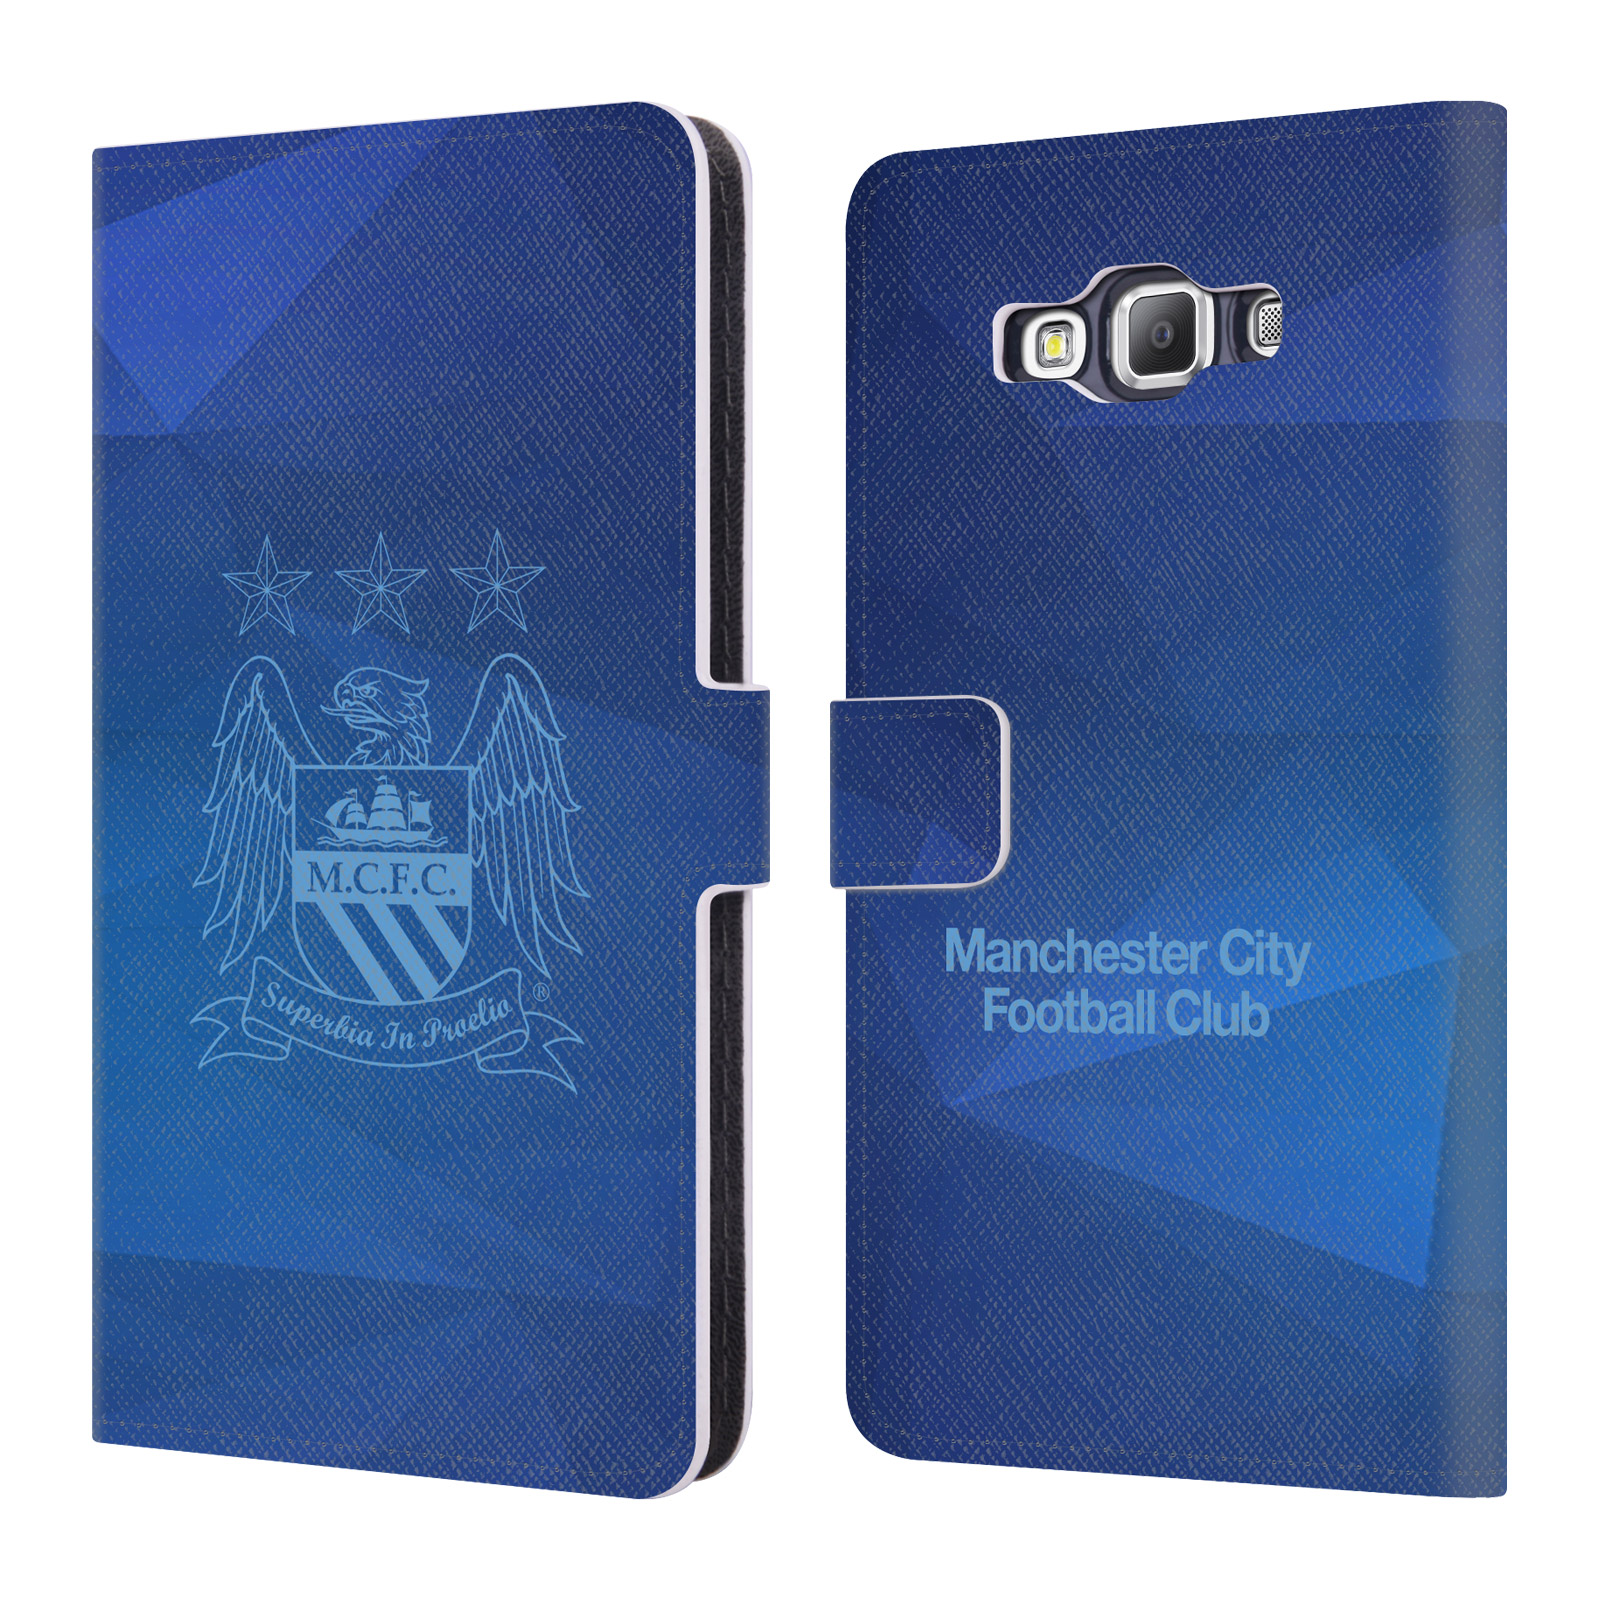 OFFICIAL MANCHESTER CITY MAN CITY FC CREST GEOMETRIC LEATHER BOOK WALLET CASE COVER FOR SAMSUNG PHONES 2